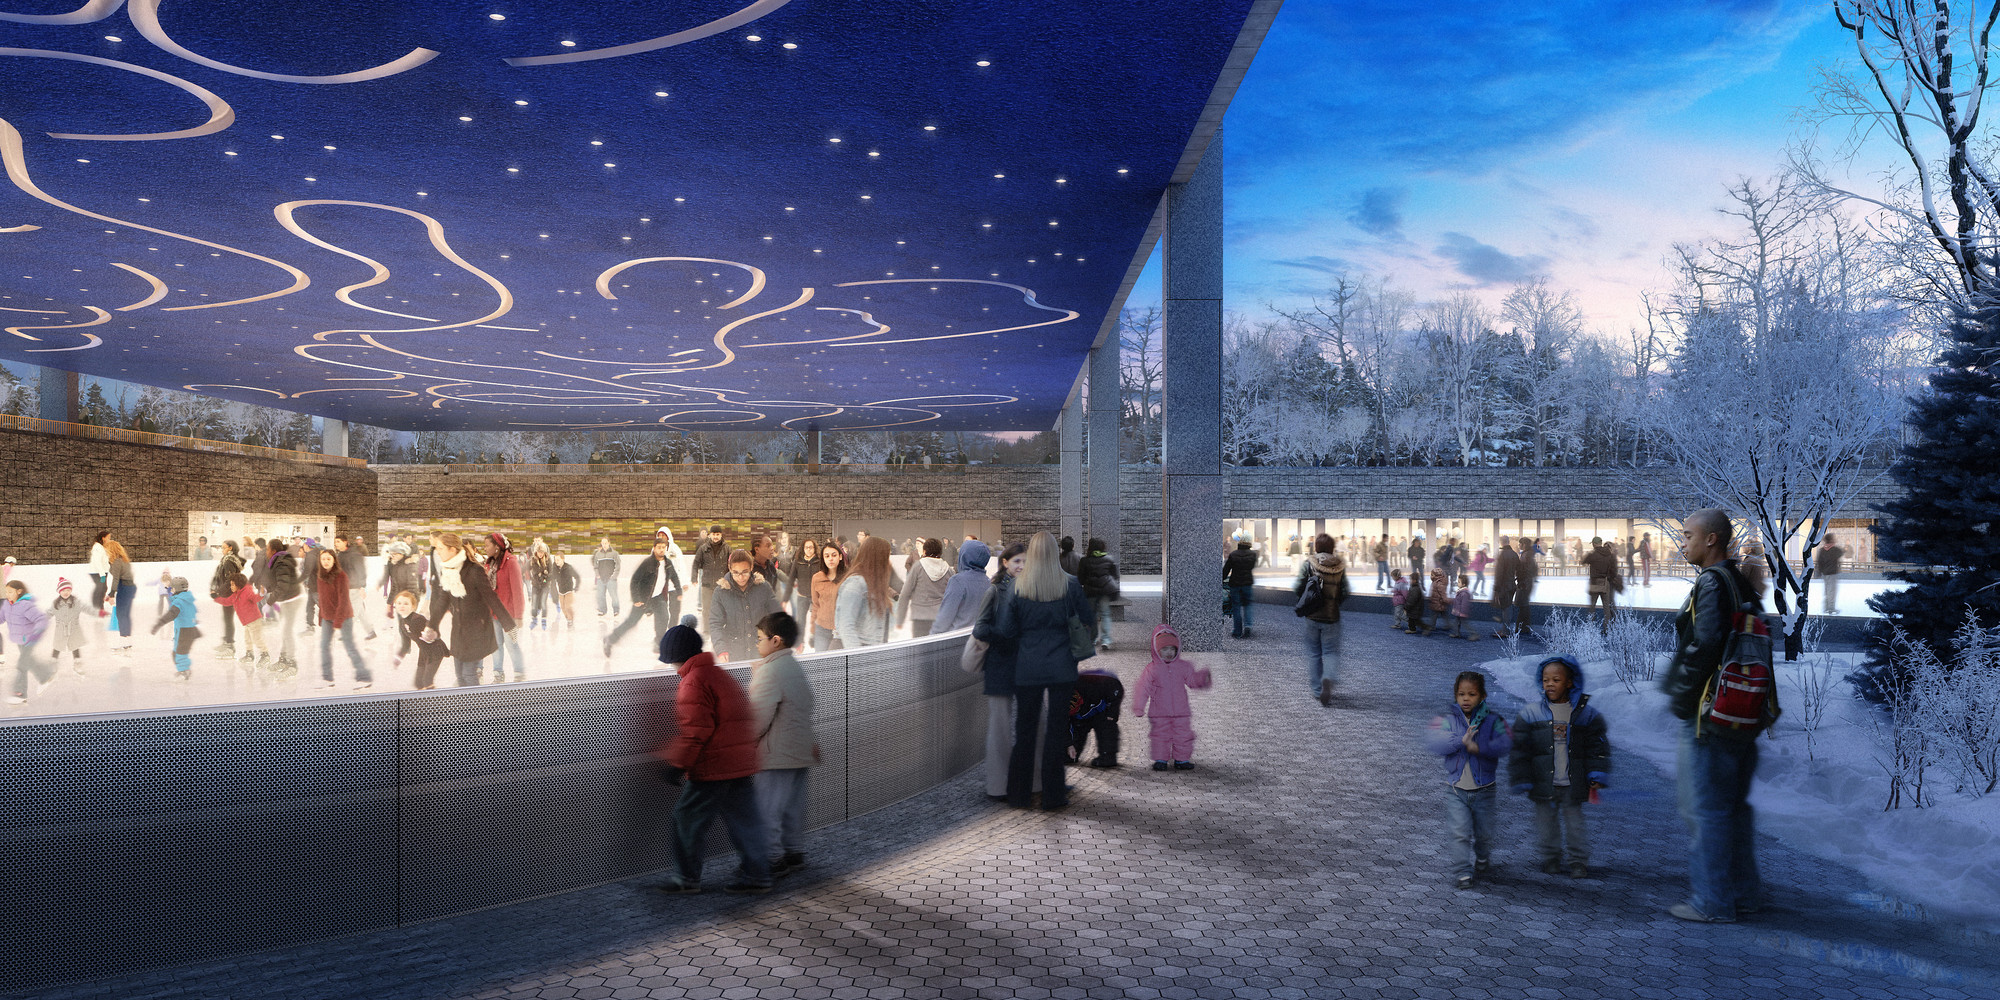 Superior Tod Williams Billie Tsien Architects Design Ice Rink For NYC, Courtesy Of  Tod Williams Billie